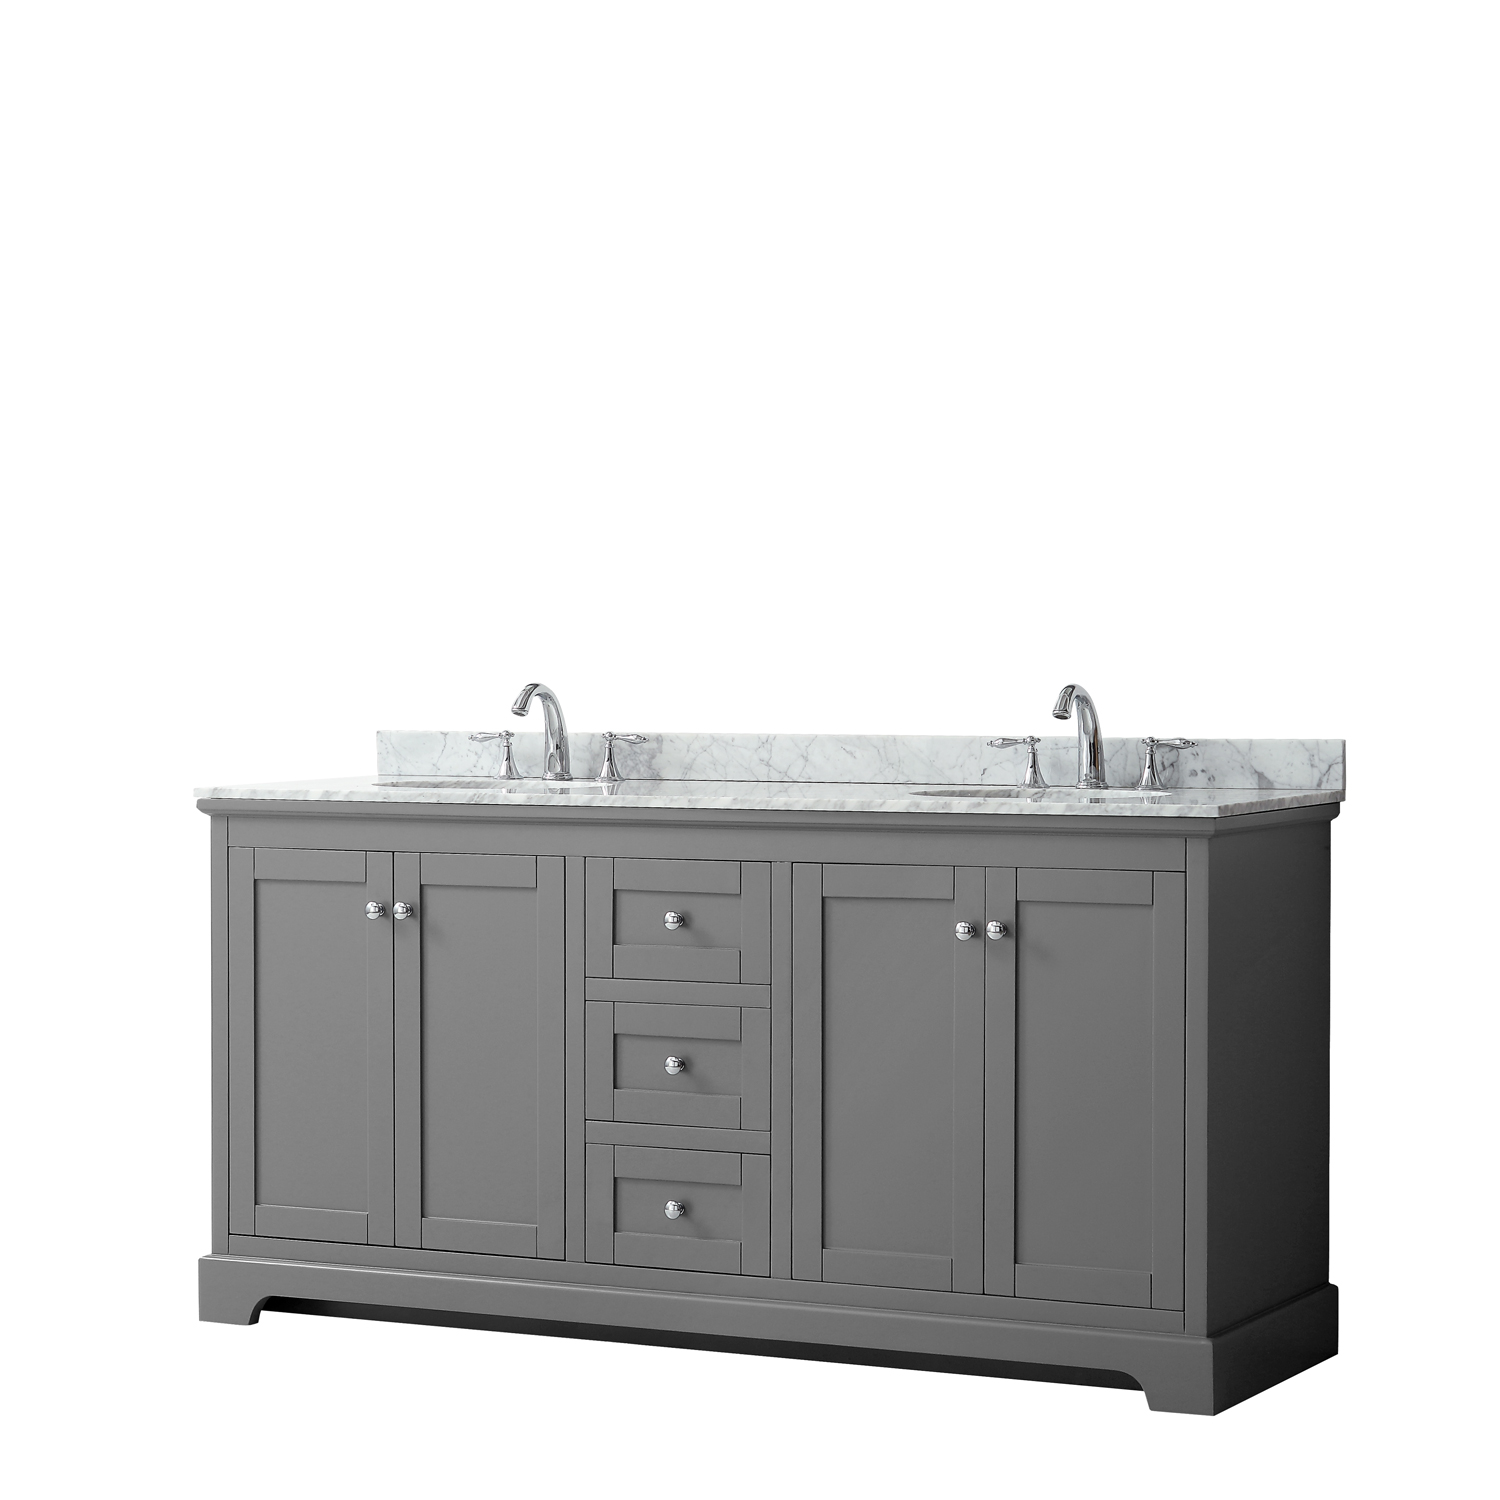 "72"" Double Bathroom Vanity in Dark Gray, No Countertop, No Sinks, and No Mirror"